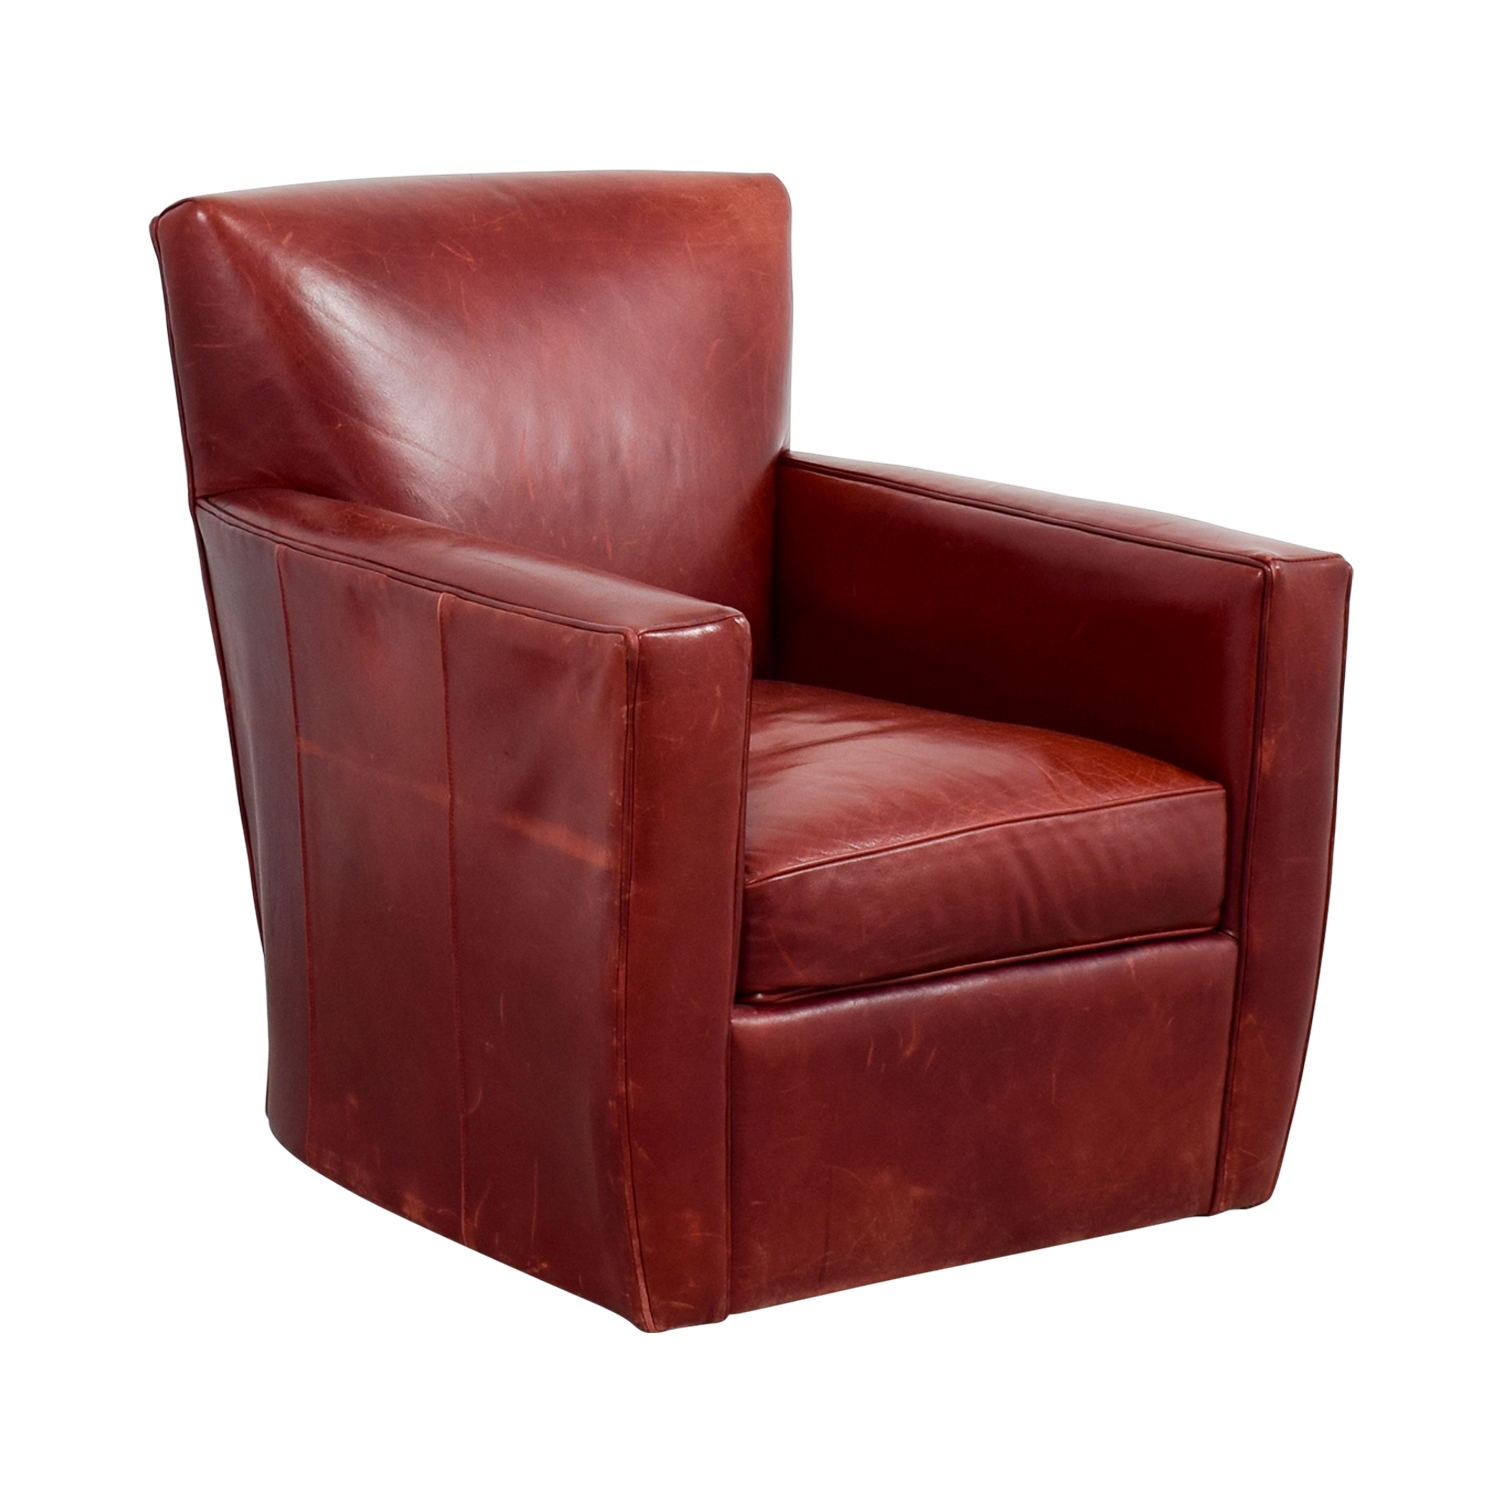 leather swivel chair hanging ceiling 79 off crate and barrel